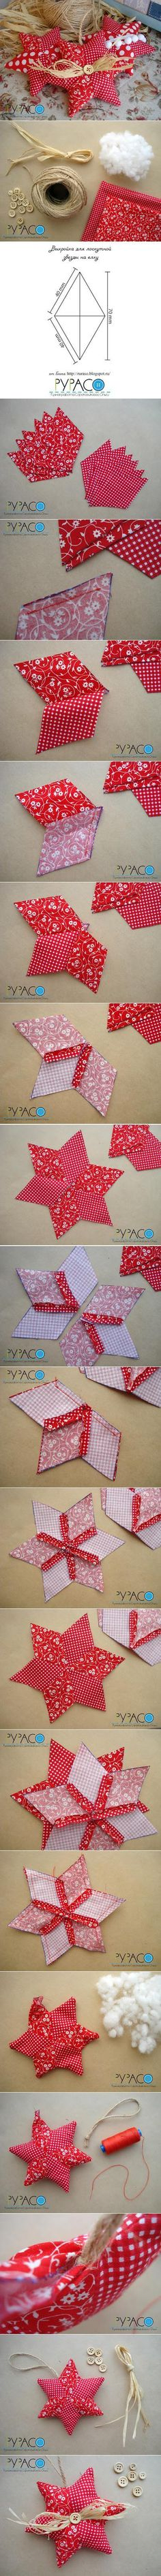 diy little fabric star diy projects - PIPicStats Quilted Ornaments, Handmade Ornaments, Xmas Ornaments, Star Ornament, Christmas Makes, Noel Christmas, Homemade Christmas, Fabric Crafts, Sewing Crafts